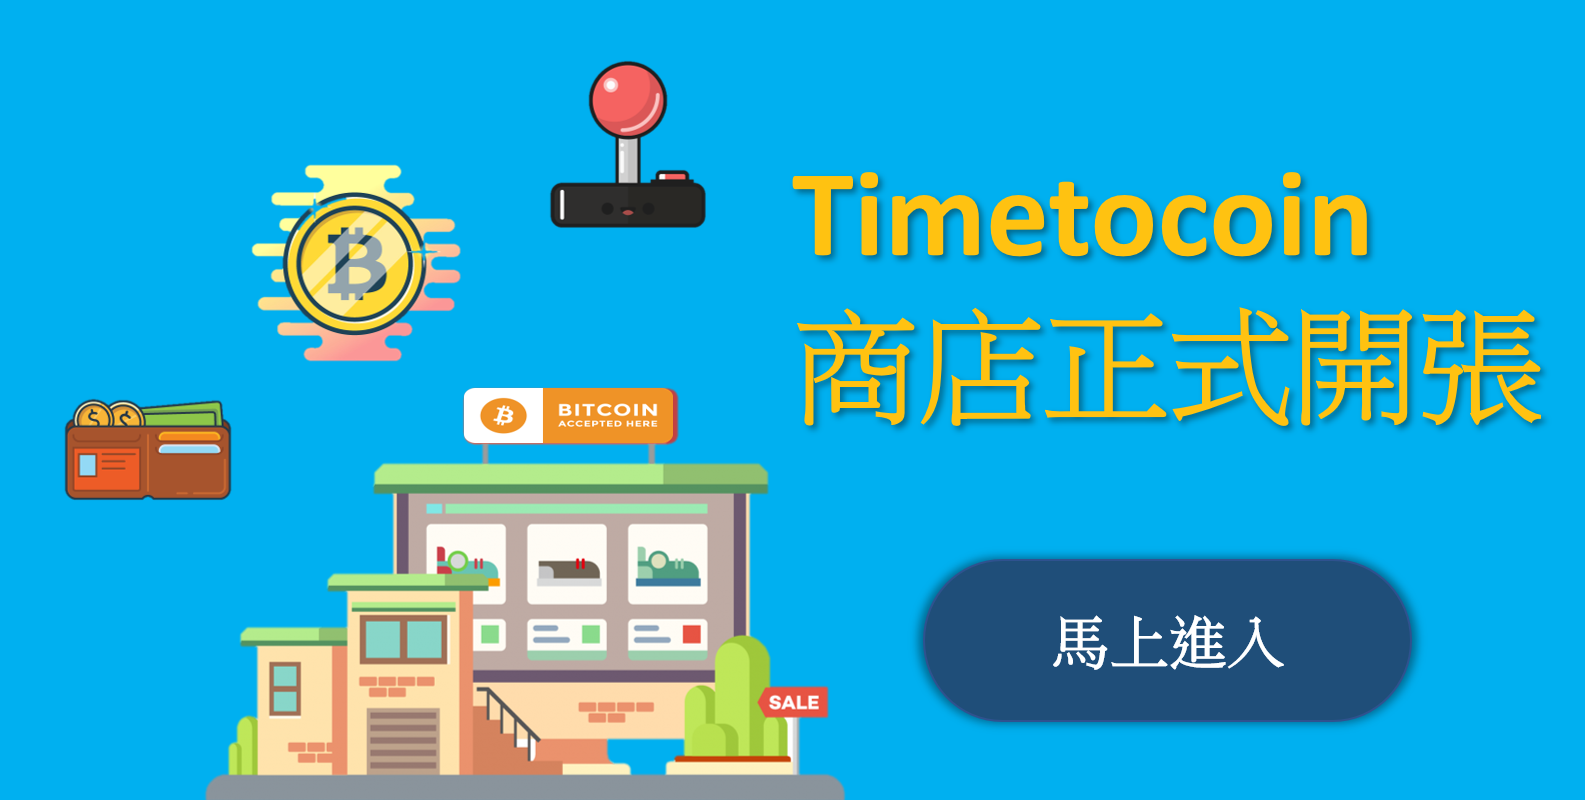 Timetocoin Shop 隆重登場,馬上使用比特幣購買